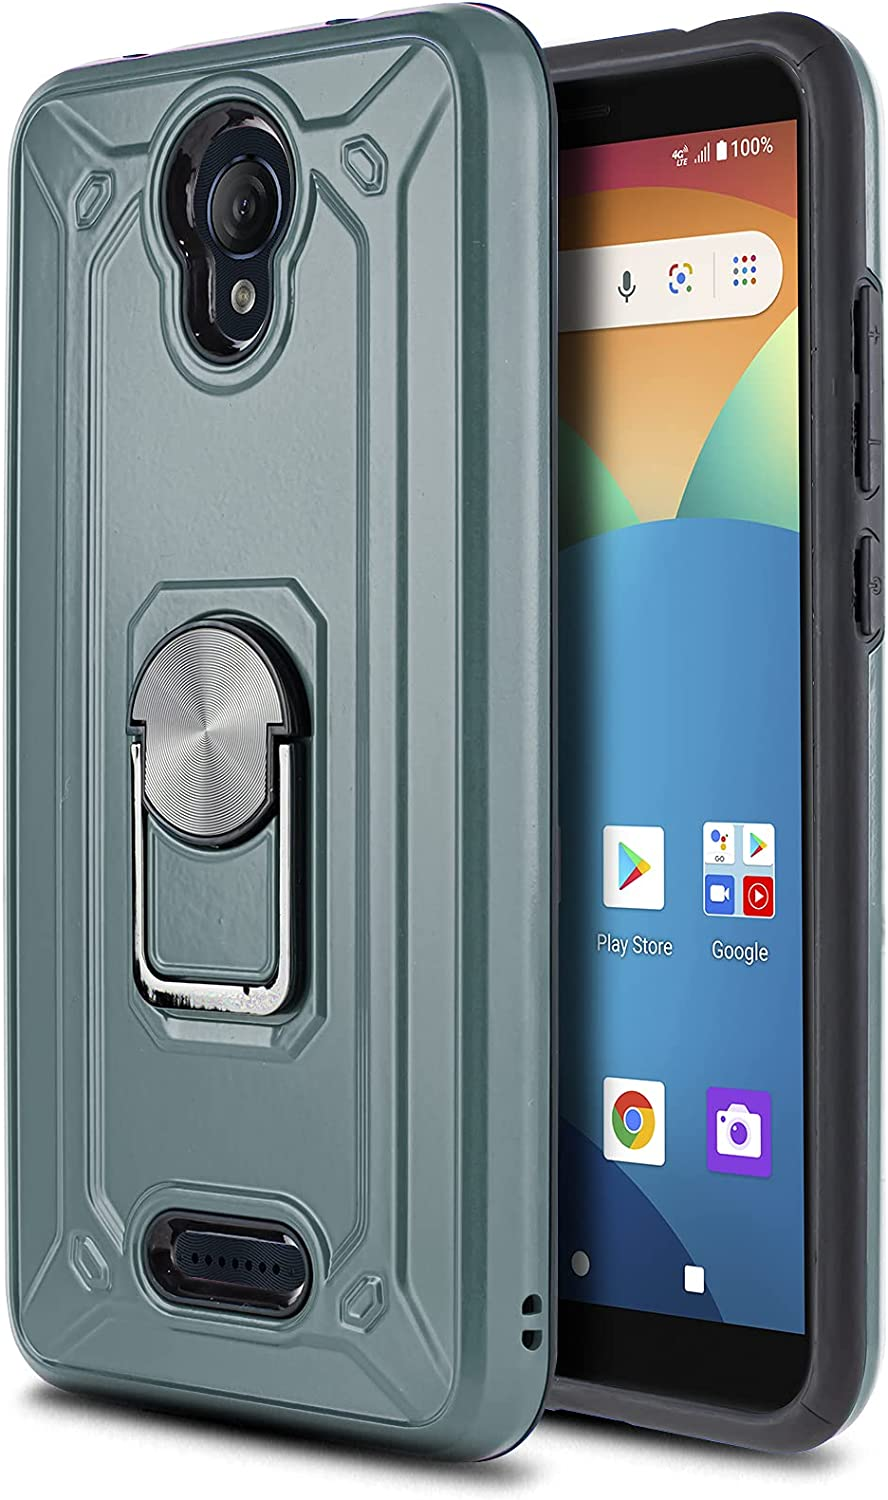 CaseMart Phone Case for [AT&T Motivate (V341U) / AT&T Fusion Z (V340U)], [Loop Series][Air Force Blue] Rotating Ring Cover with Built-in Kickstand for AT&T Motivate & Fusion Z (AT&T Prepaid Phone)